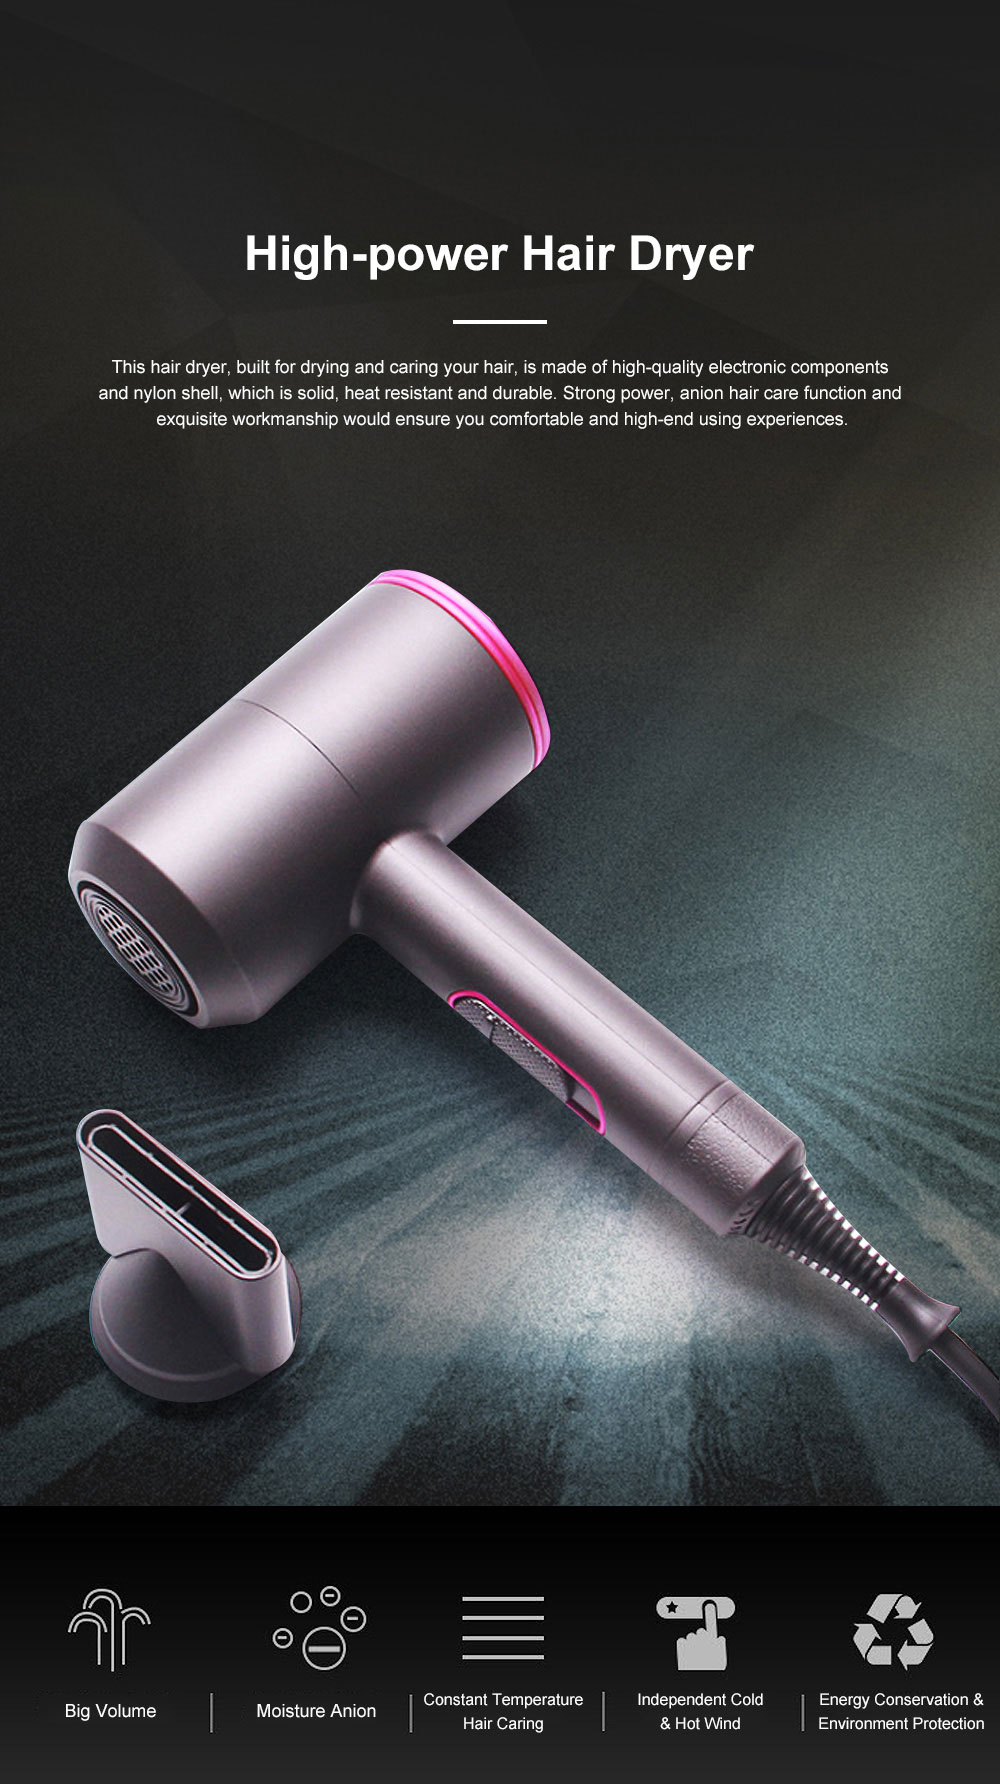 High-Power Household Anion Care Cold Hot Wind Hair Dryer Nonradiative Hair Shaping Modeling Style Tool 0